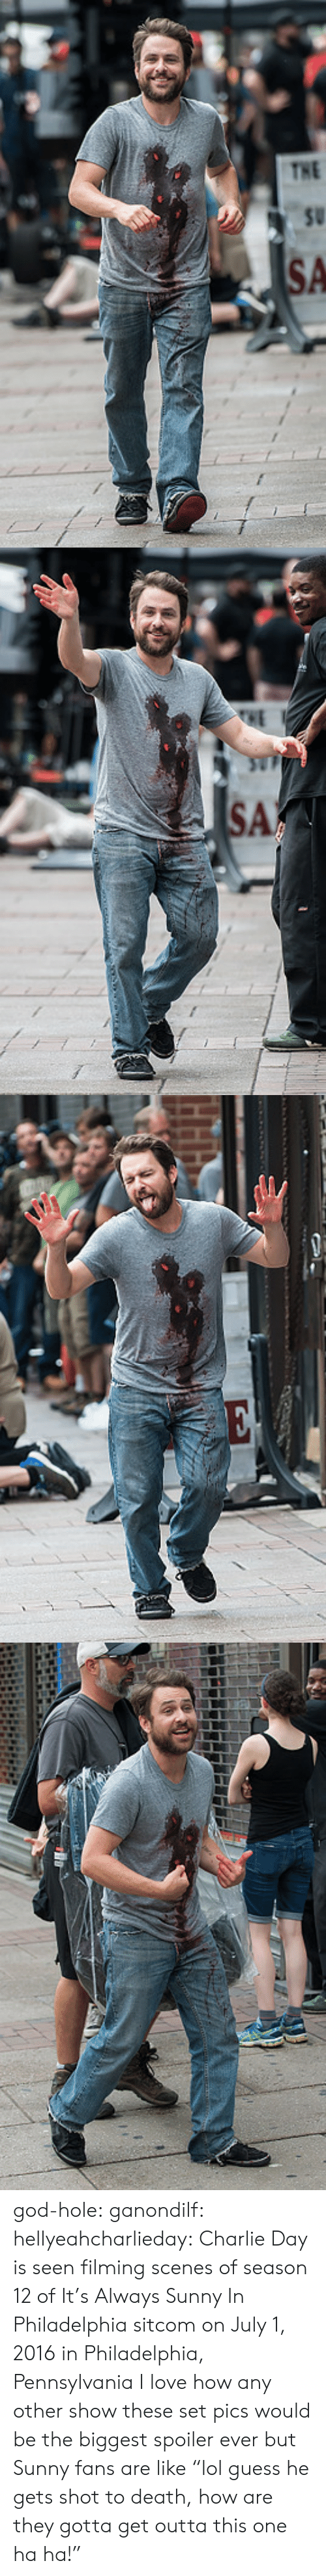 """Charlie, God, and Love: god-hole: ganondilf:  hellyeahcharlieday:  Charlie Day is seen filming scenes of season 12 of It's Always Sunny In Philadelphia sitcom on July 1, 2016 in Philadelphia, Pennsylvania  I love how any other show these set pics would be the biggest spoiler ever but Sunny fans are like """"lol guess he gets shot to death, how are they gotta get outta this one ha ha!"""""""